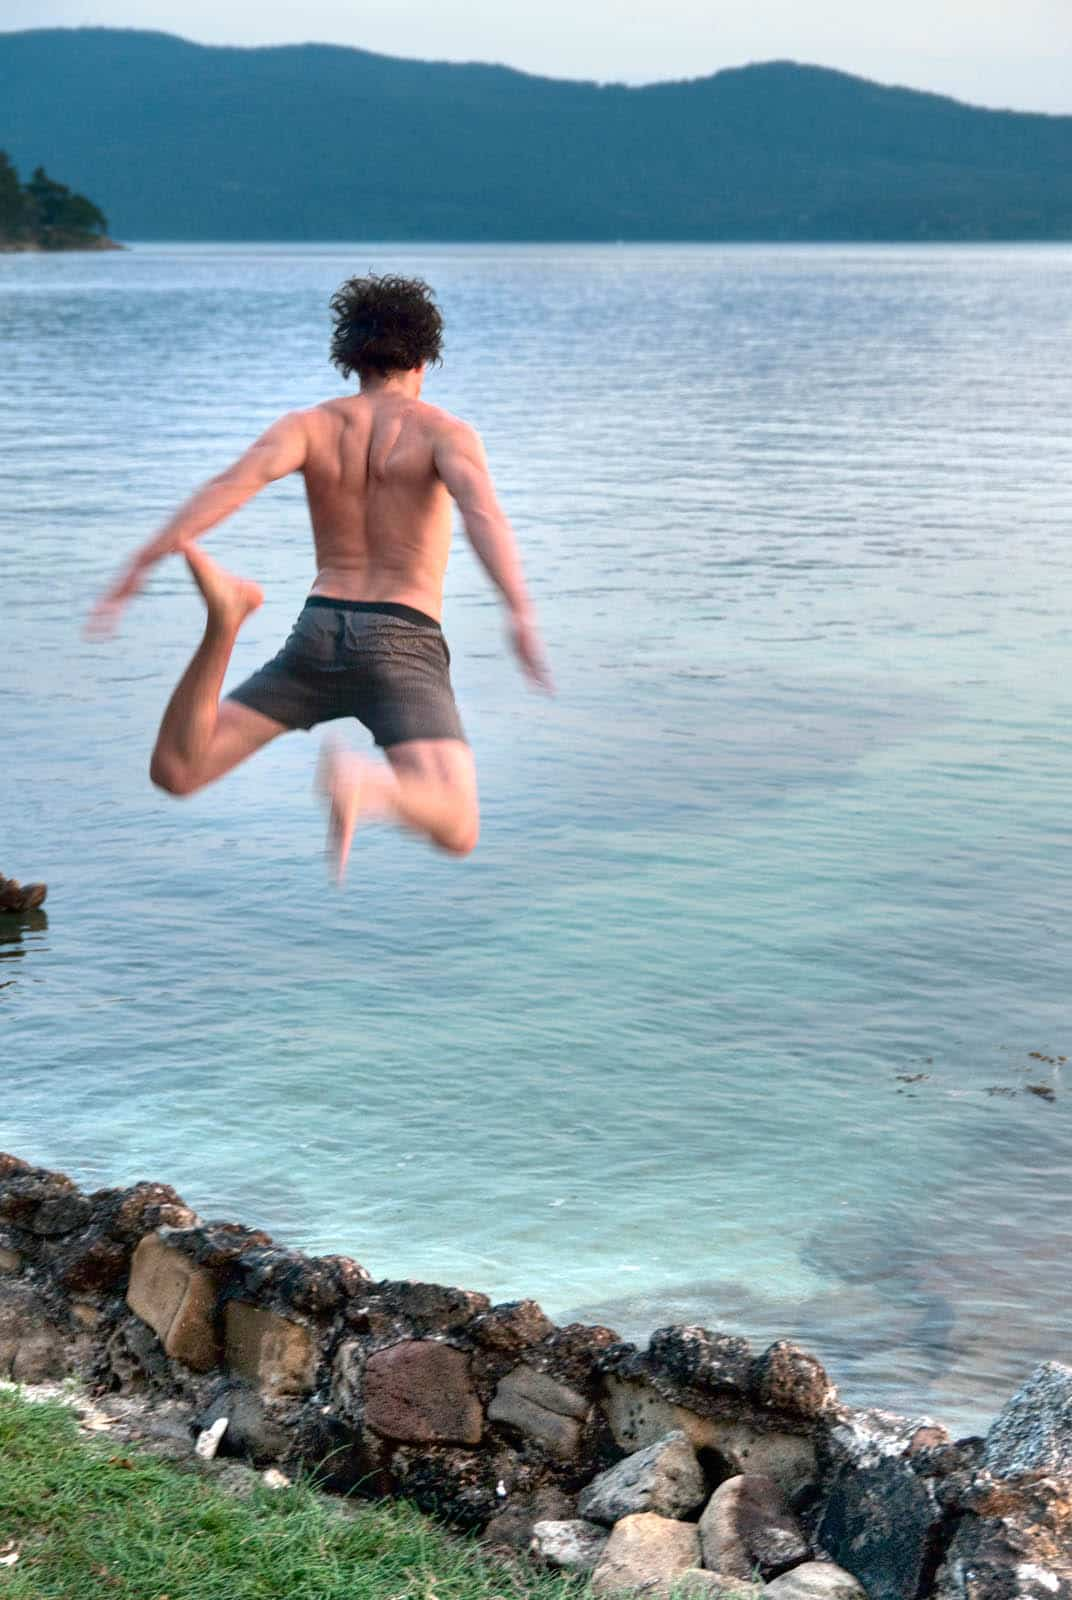 man in underwear jumping into the ocean